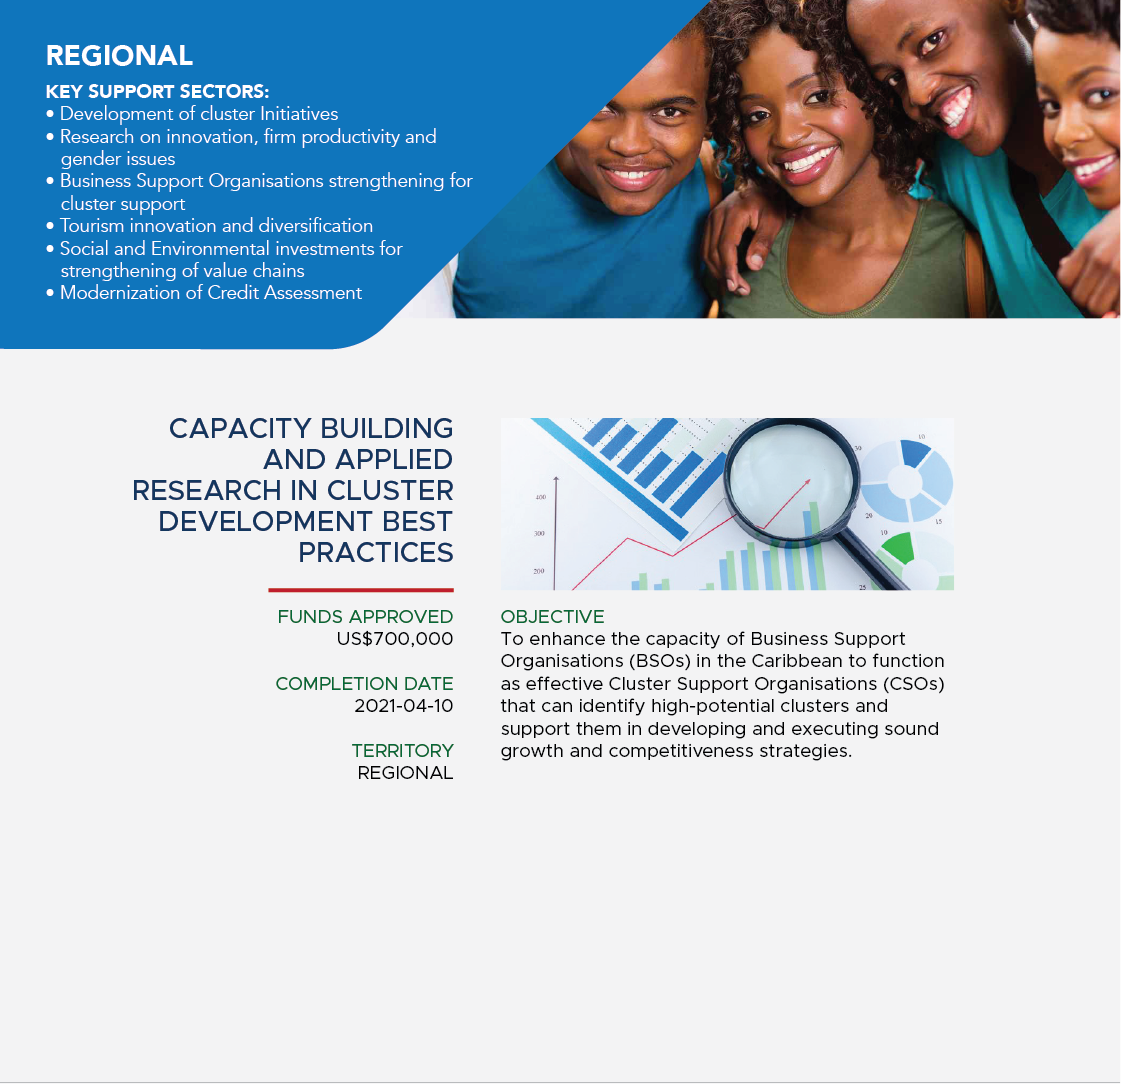 Capacity building and applied research in cluster development best practices